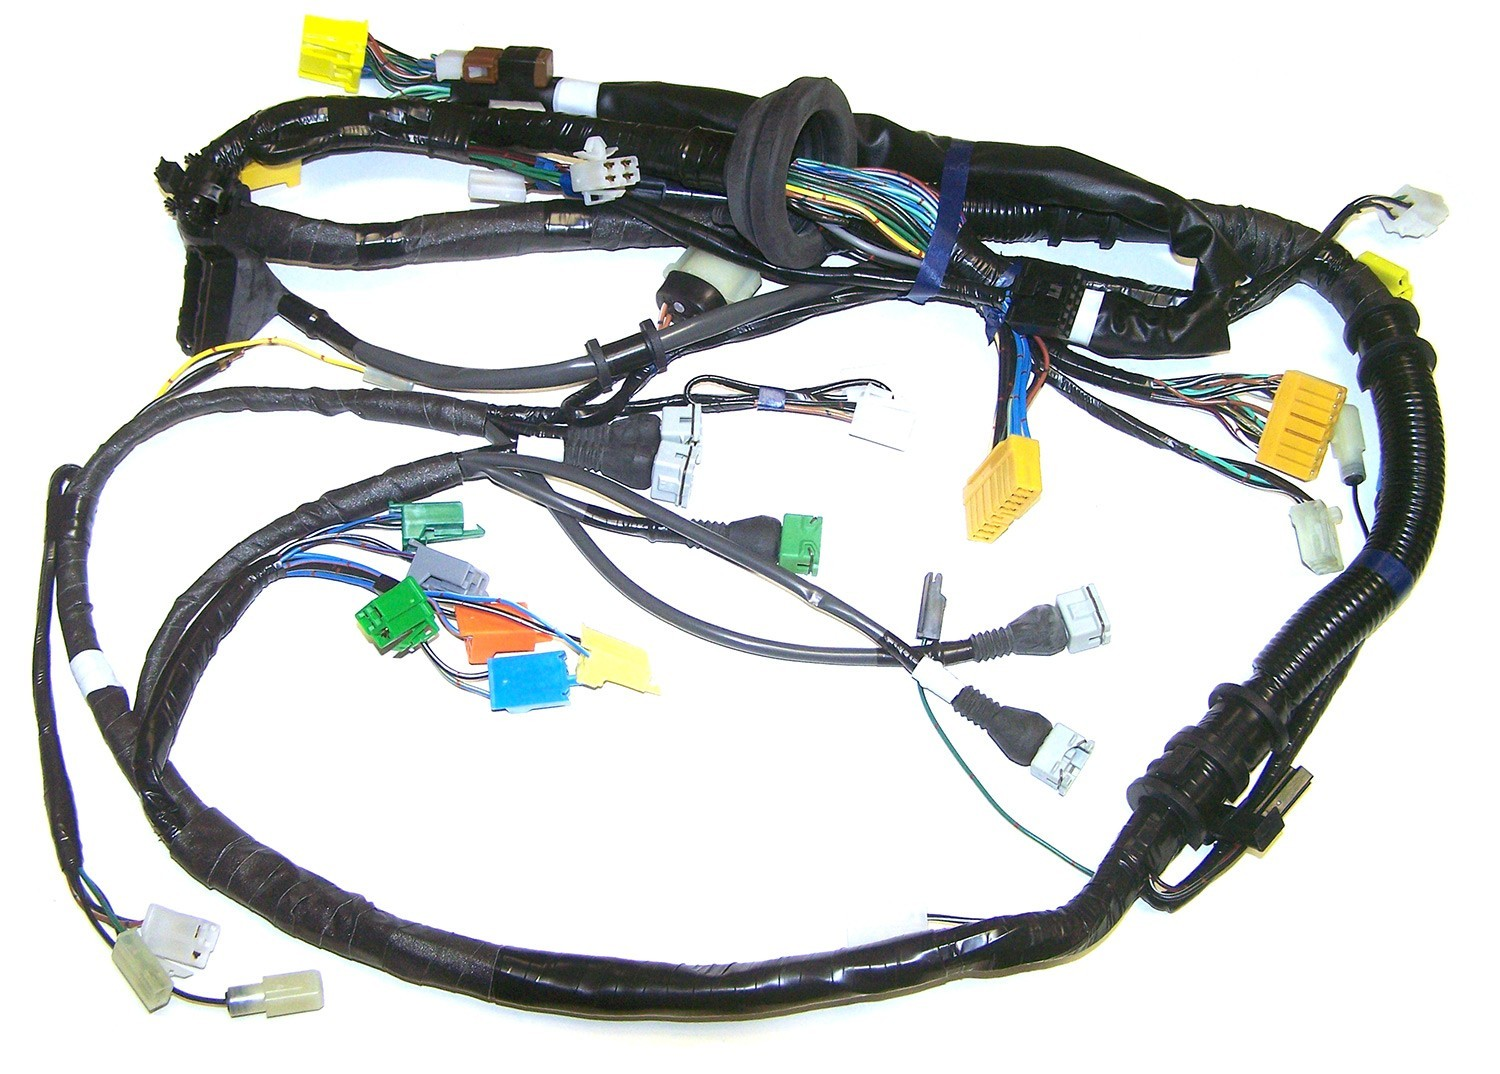 N332 18 051KDetail 87 88 turbo rx7 engine wiring harness (n332 18 051k) engine wiring harness at nearapp.co